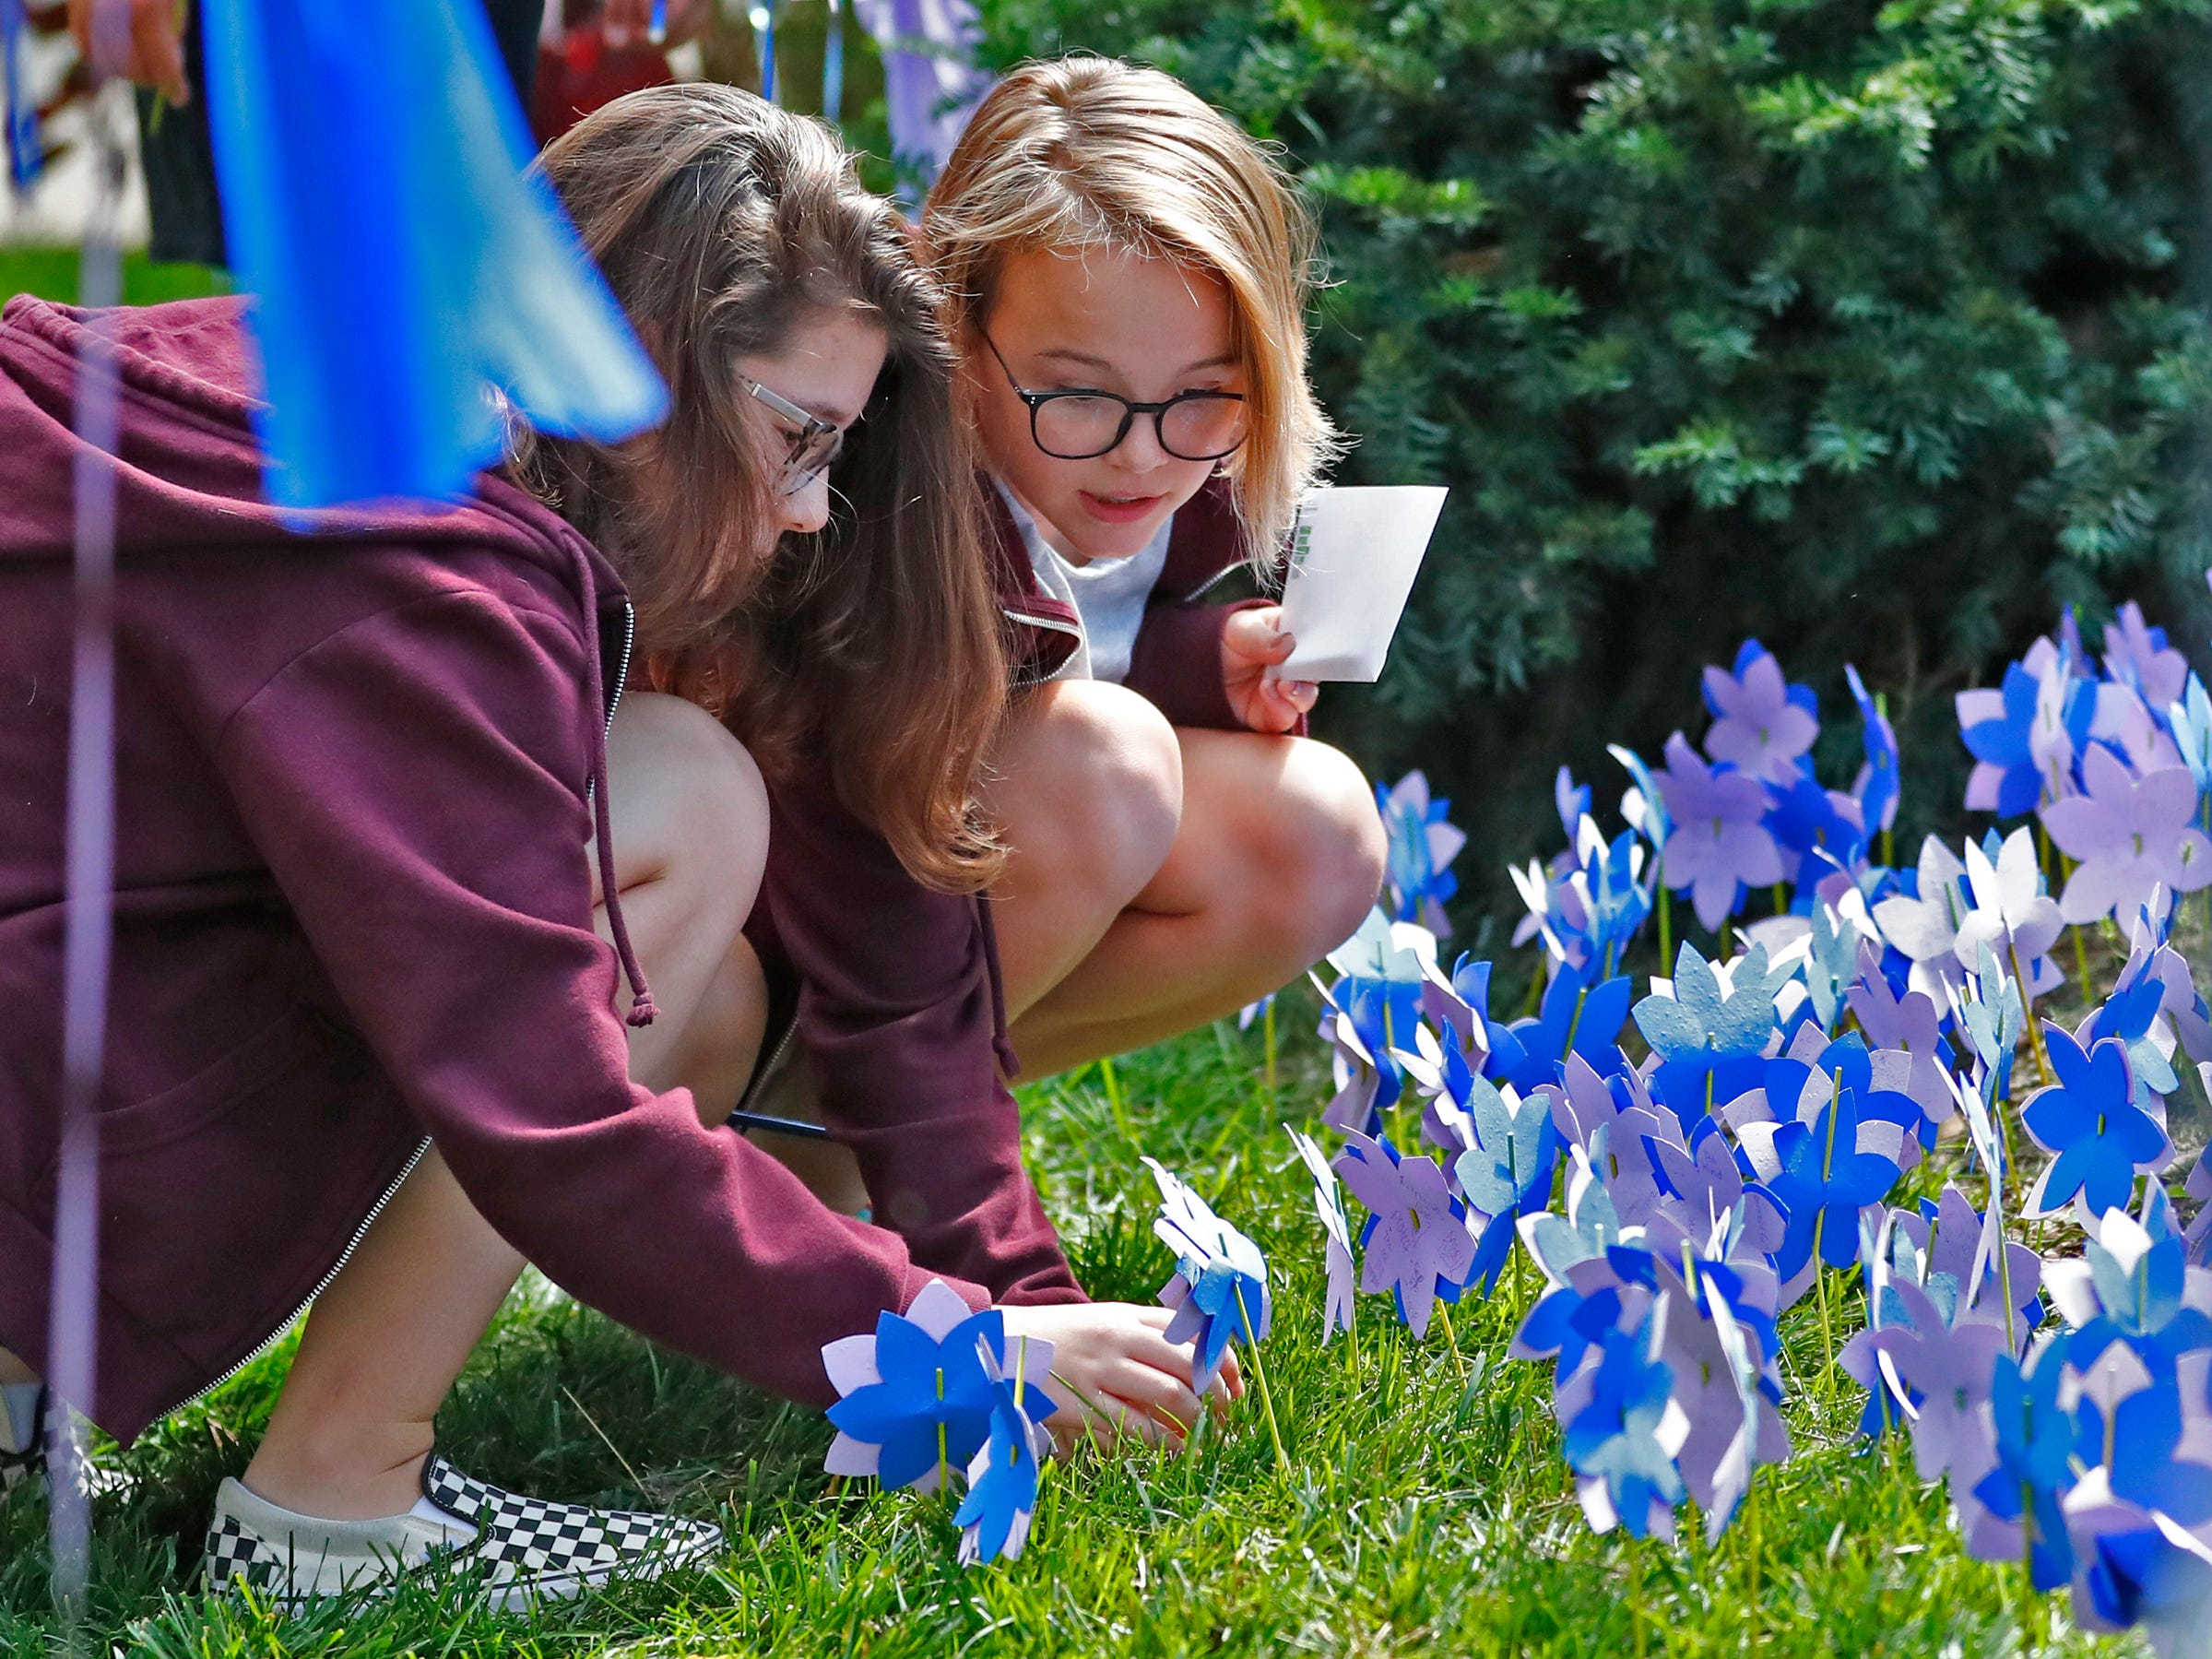 """Victoria Crouch, left, and Keller Wason, with Bloomington Project School, and other students plant flower seeds with paper flowers and notes during the planting of the Eva Kor Peace Garden at Newfields, Monday, Sept. 17, 2018.  Students viewed the documentary """"Eva,"""" about Holocaust survivor Eva Kor, and then helped in the planting of the Peace Garden.  Kor also spoke with the students, asking them to think of one thing to make the world better."""